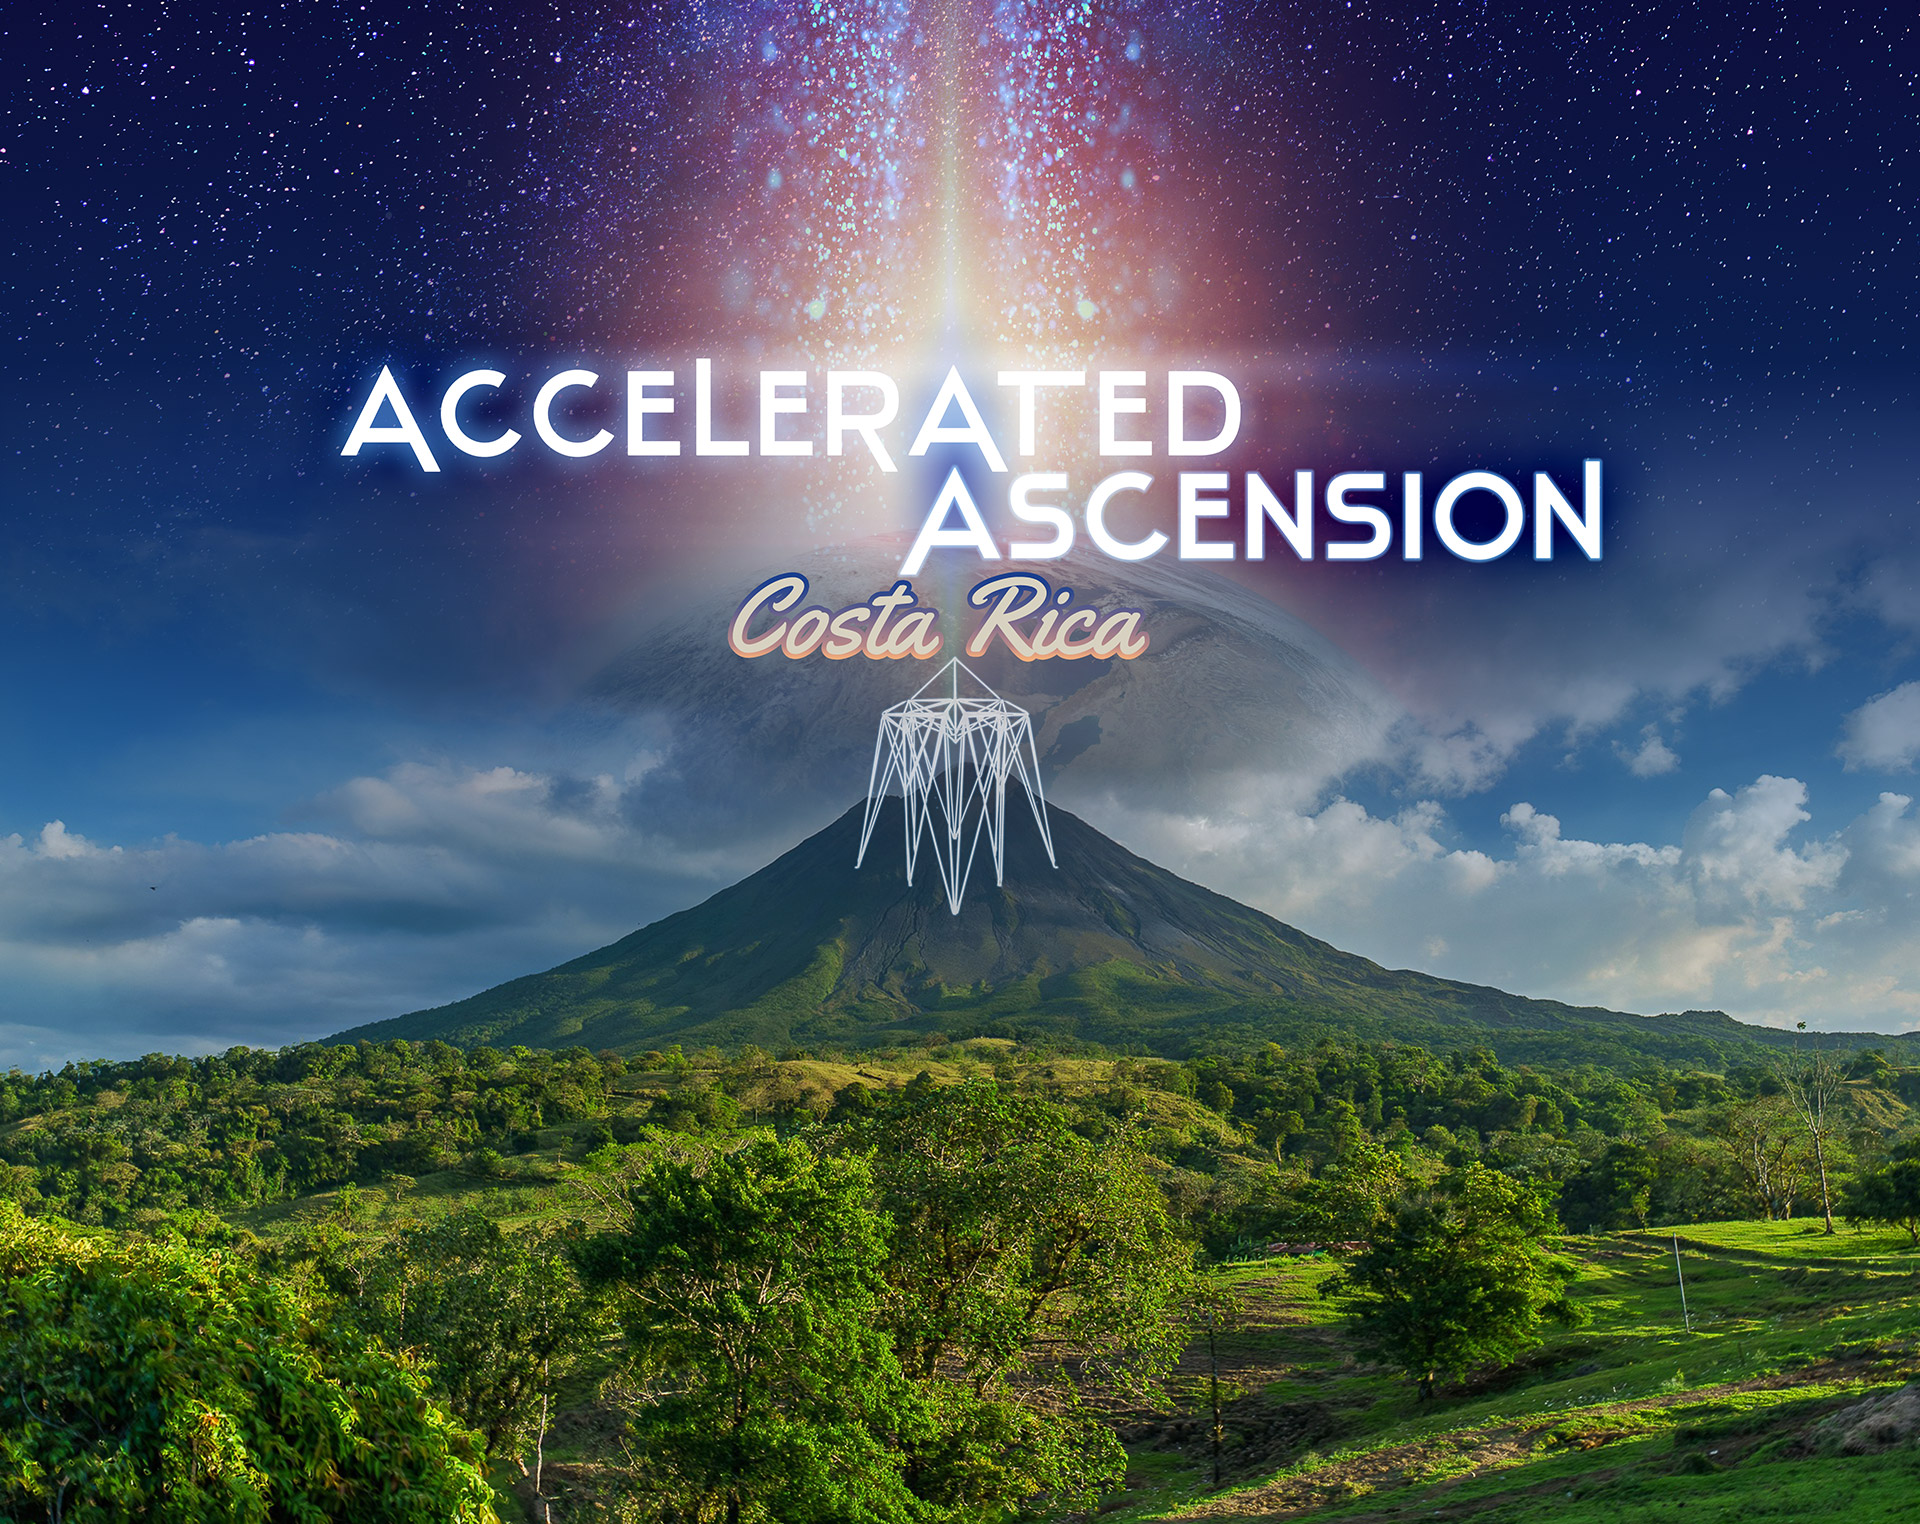 Accelerated Ascension